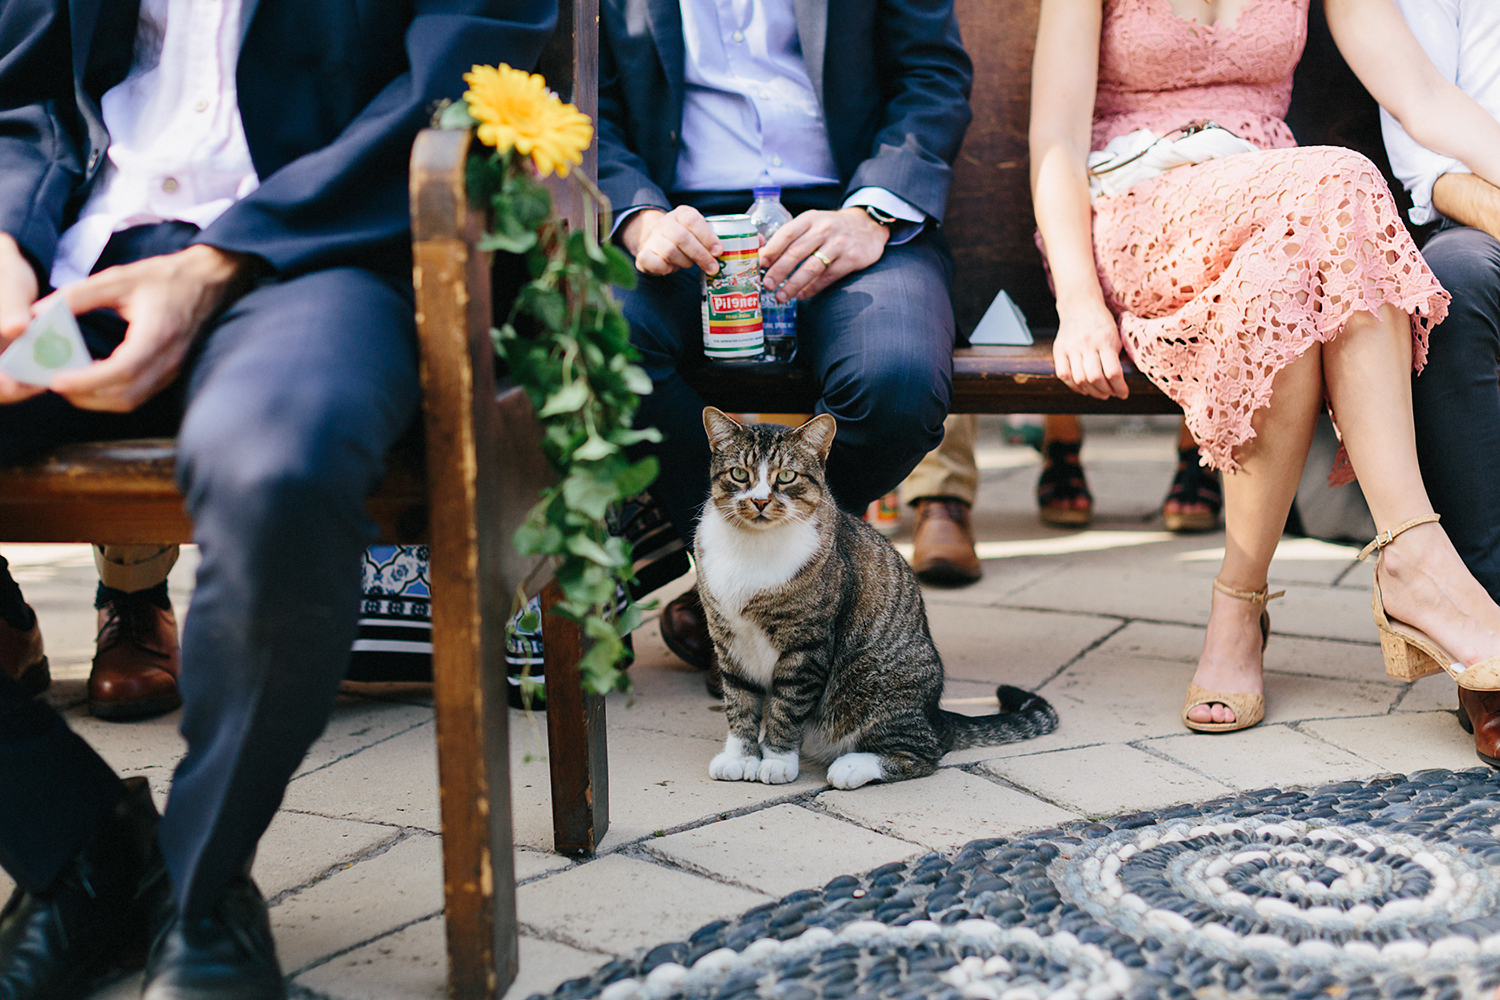 Best-Photographers-in-Toronto-Analog-Film-Toronto-Island-Wedding-Wards-Island-Clubhouse-Venue-small-intimate-hipster-alternative-vintage-inspired-wedding-ceremony-outdoor-cute-little-cat-candid.jpg